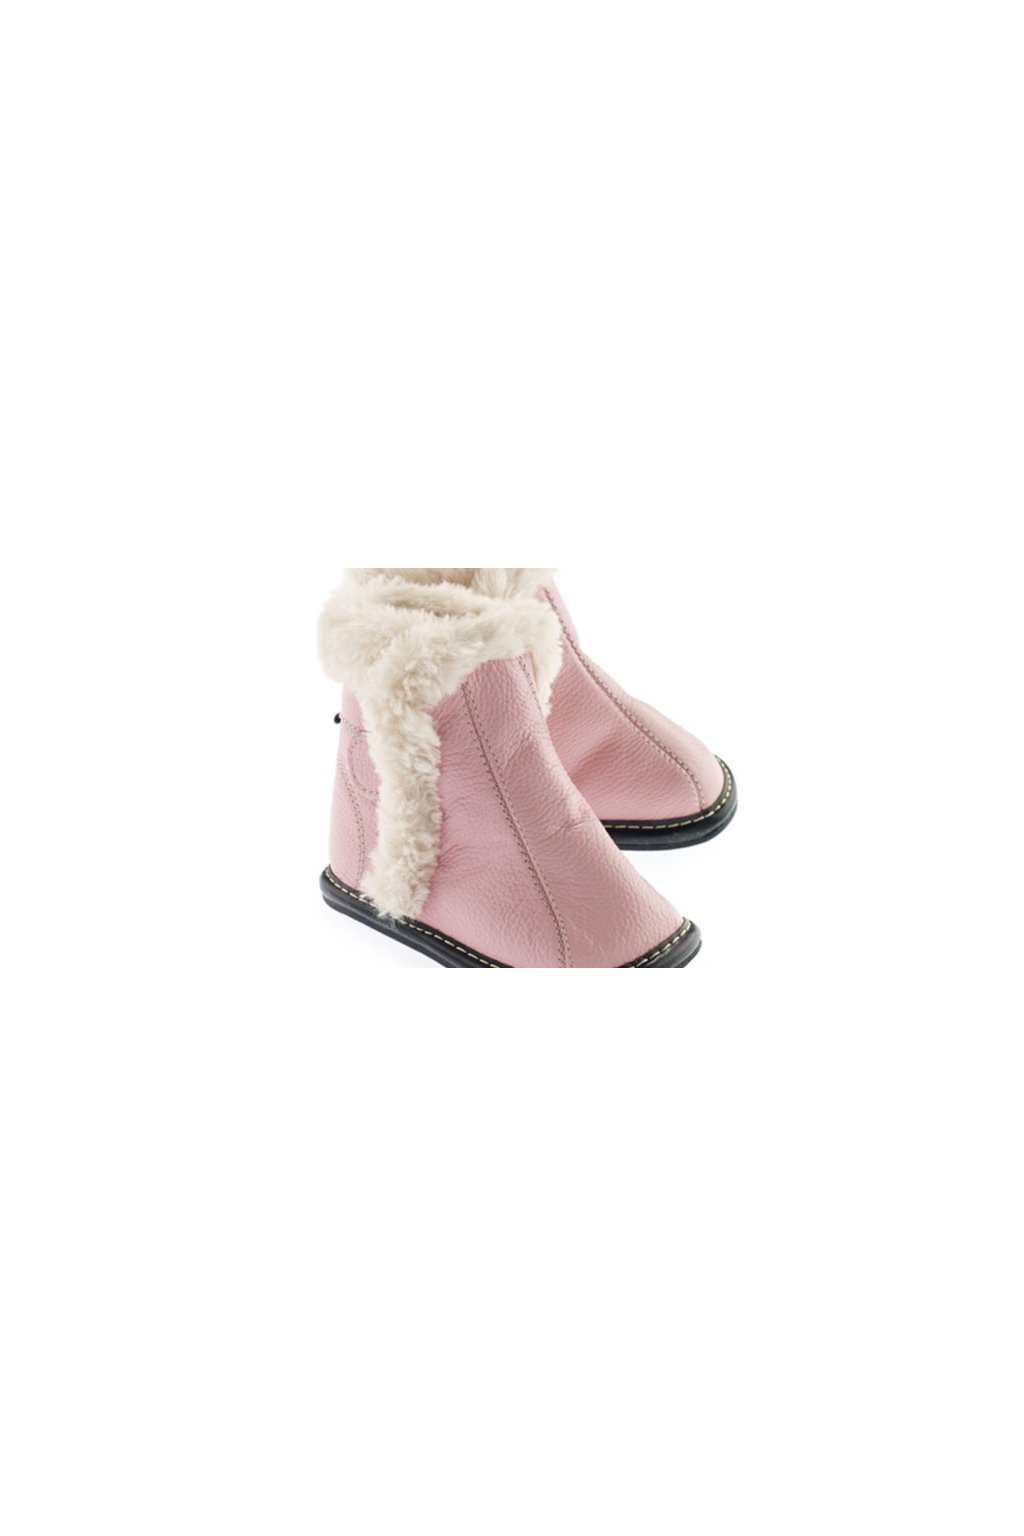 Jack and Lily Boots Pink